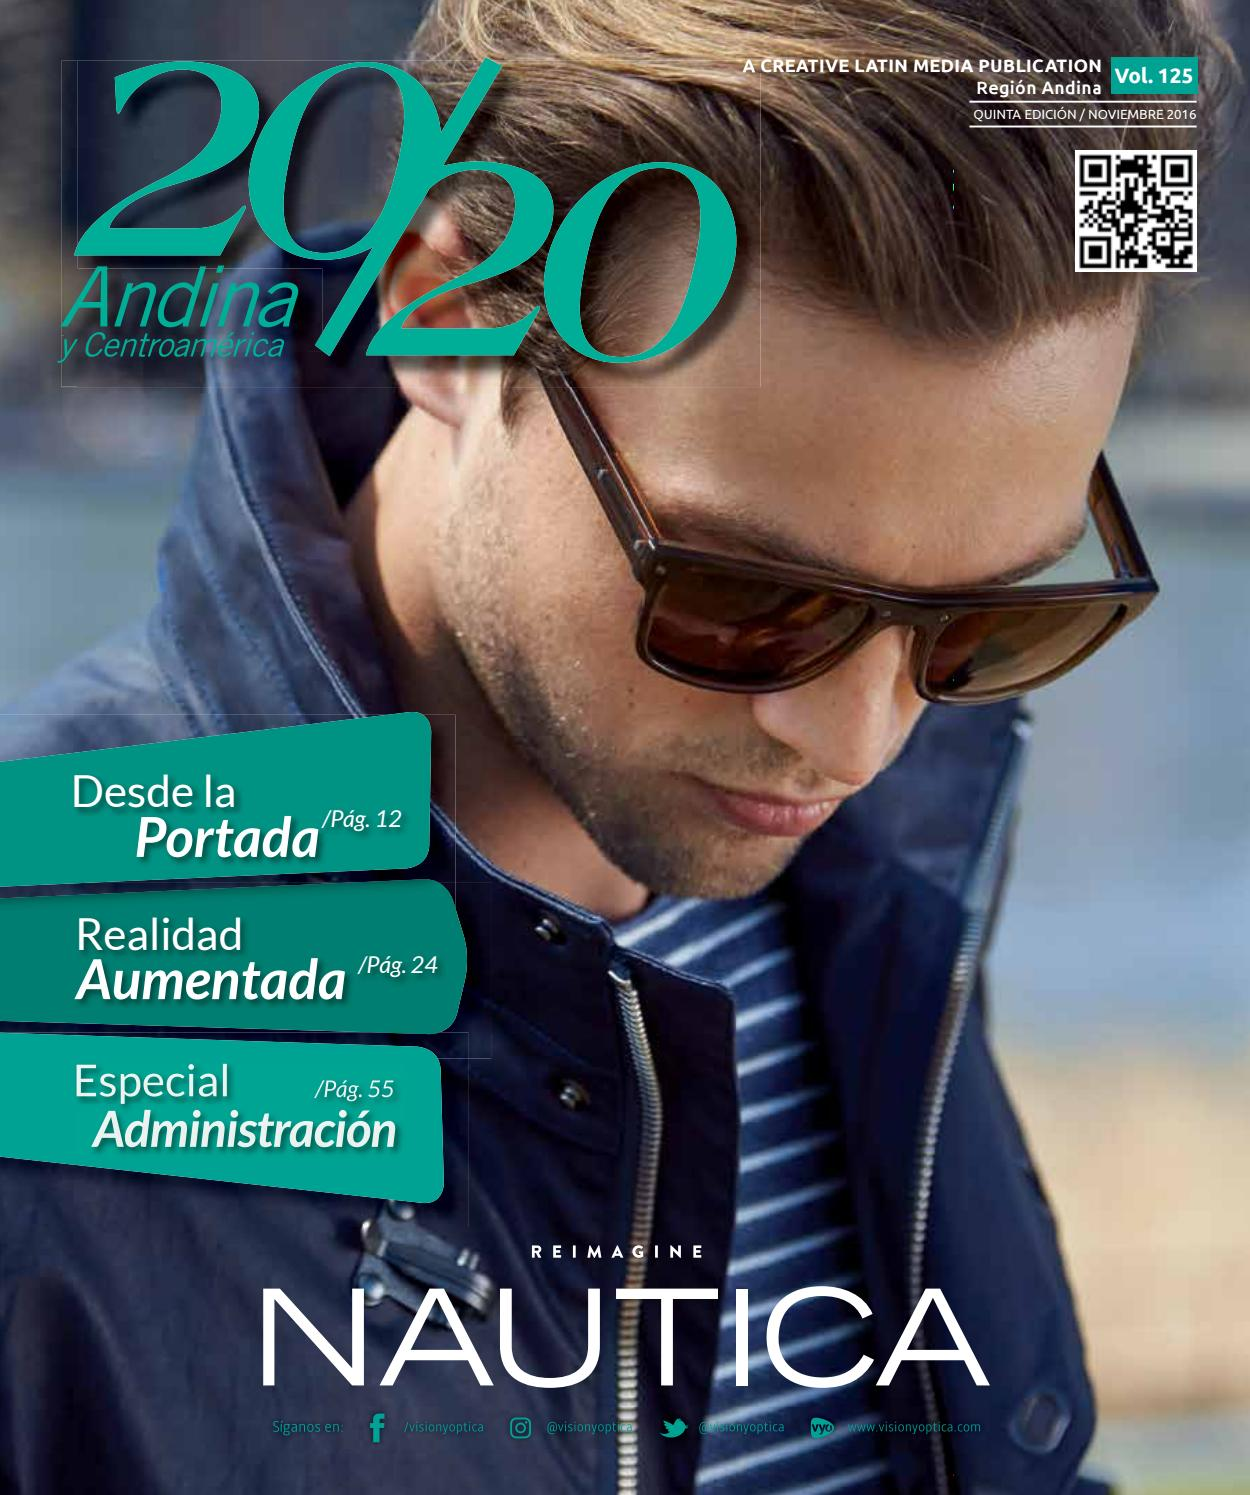 cab16f418c 2020 5ta 2016 and baja total by Creative Latin Media LLC - issuu